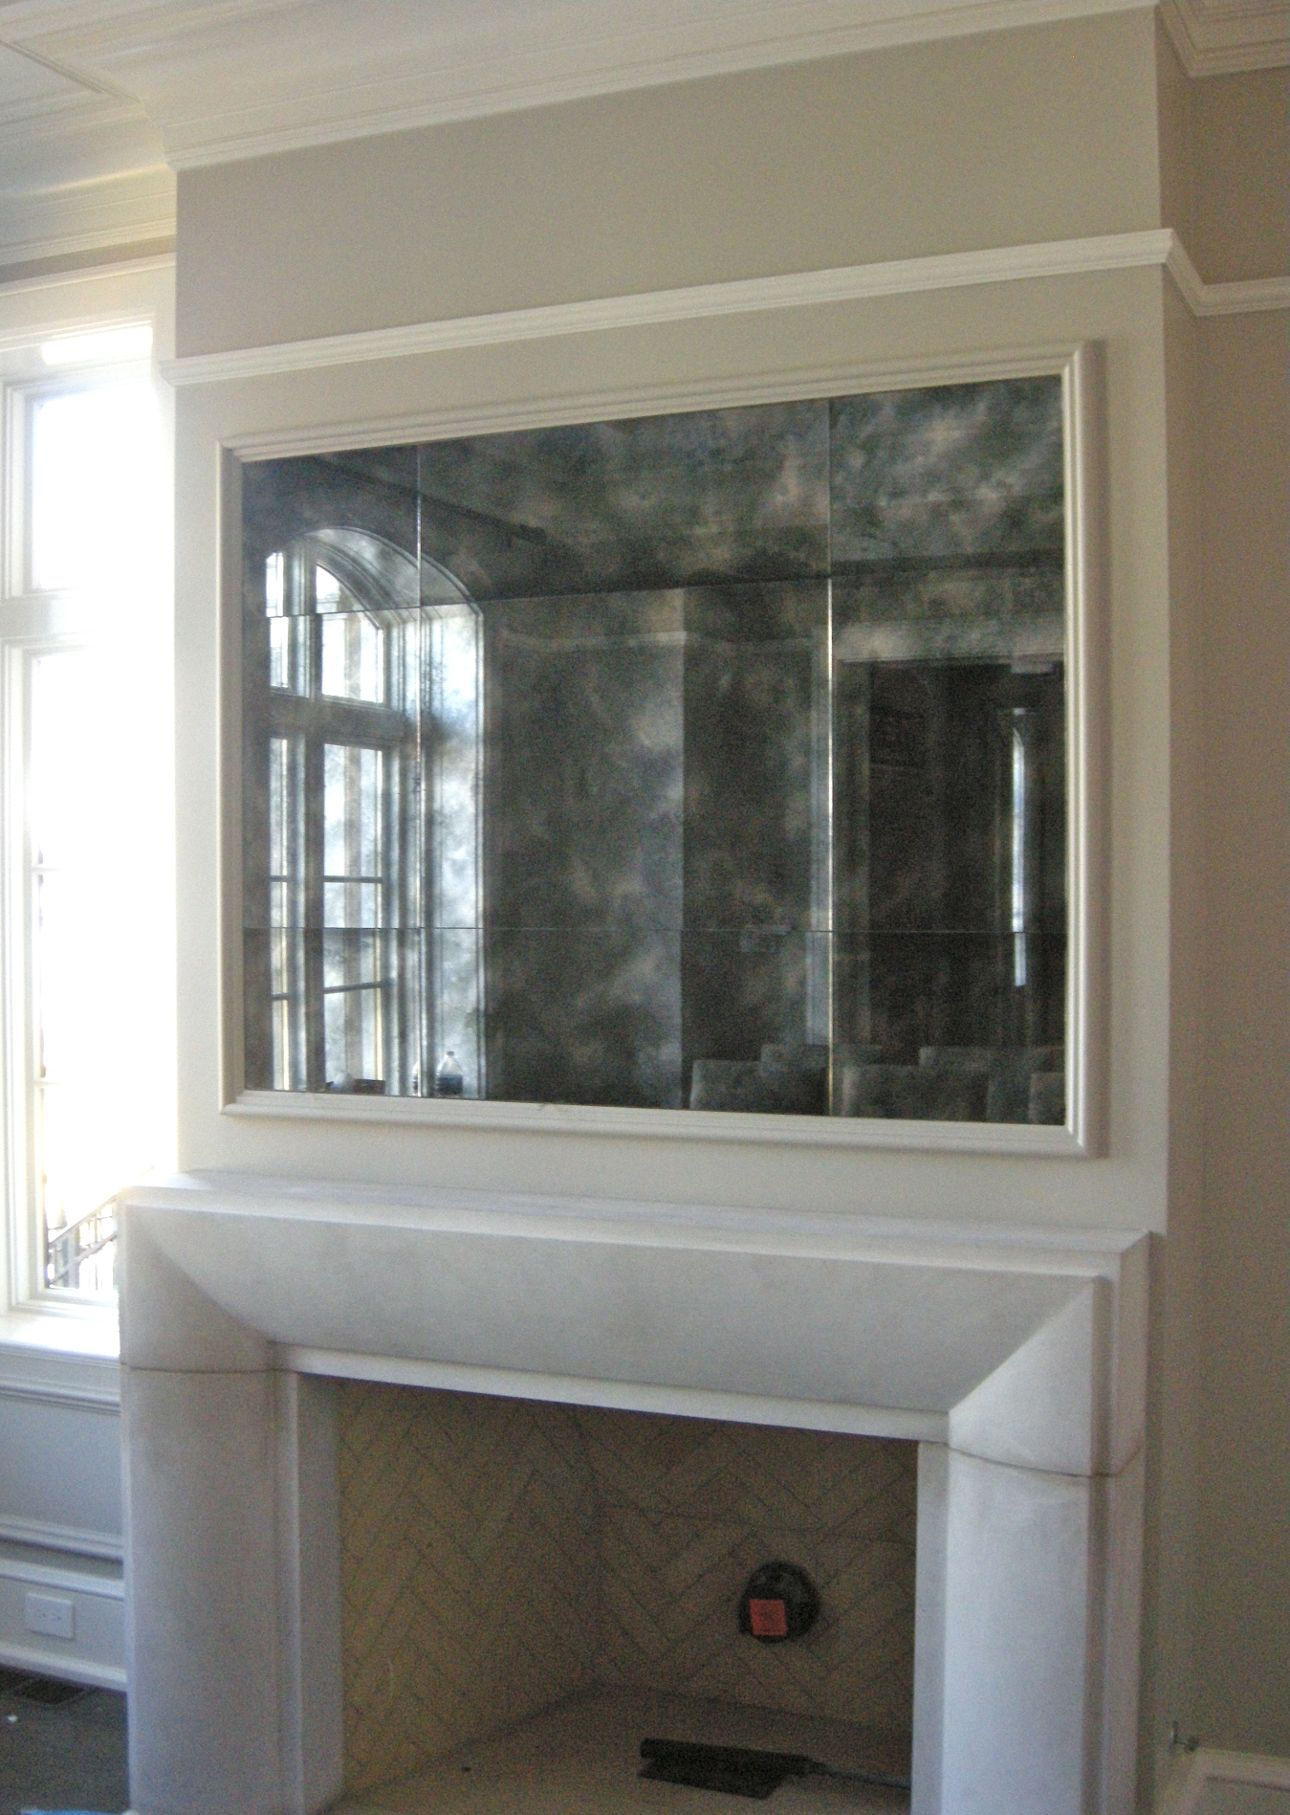 Antiqued Mirror Above The Fireplace Mirror Antique Custom Framed Mirrors Mirror Frames Foyer Wall